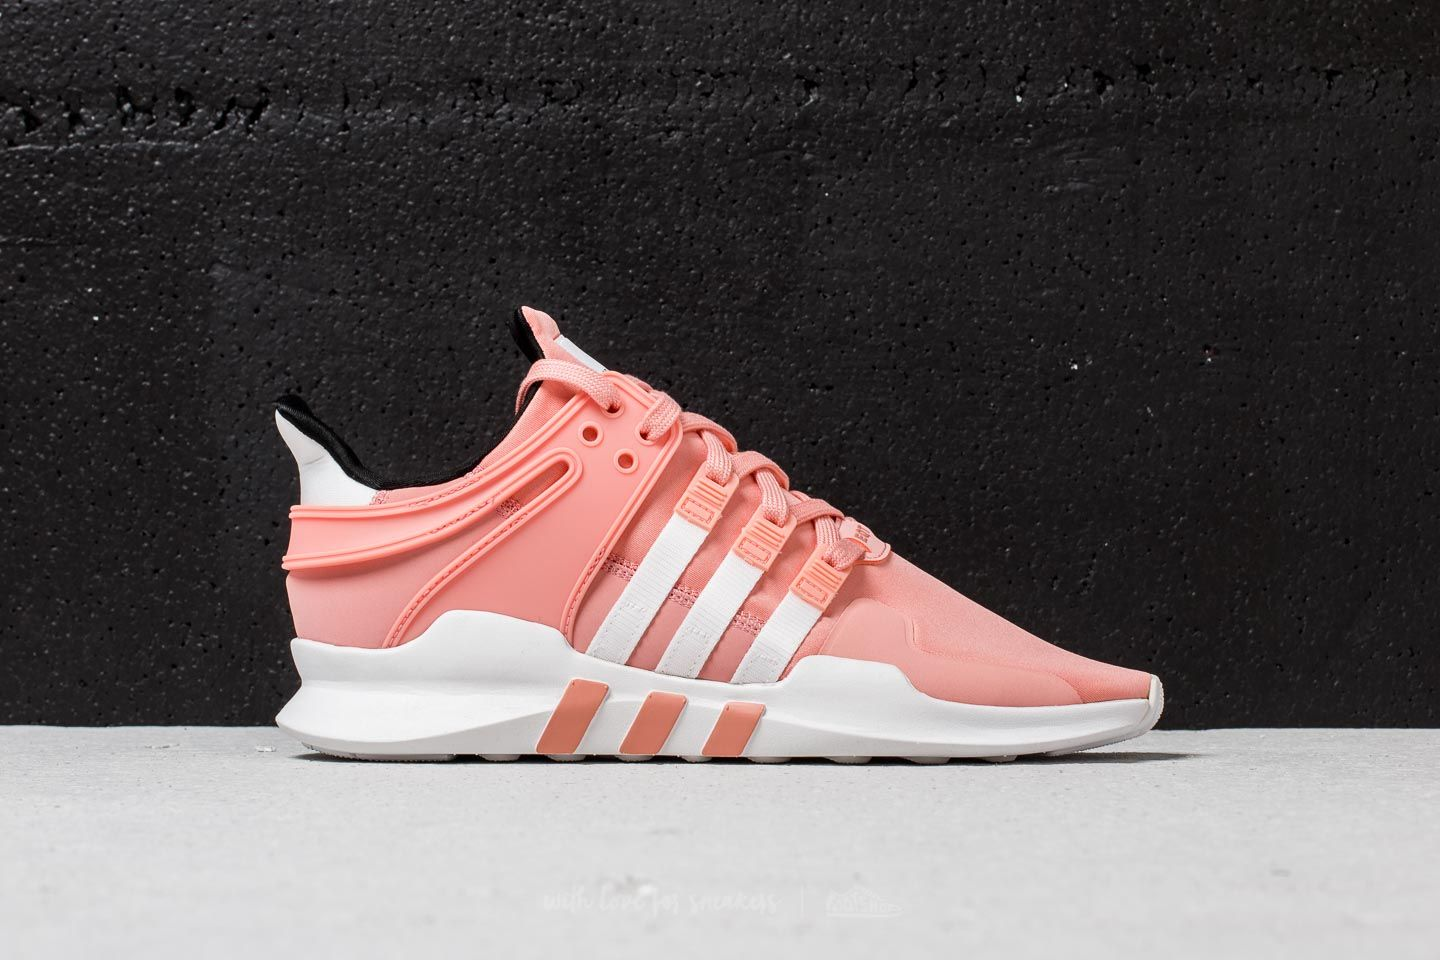 check out 18bb3 5d36d ... sale adidas eqt support adv trace pink ftw white core black au meilleur  prix 84 7e5ba ...